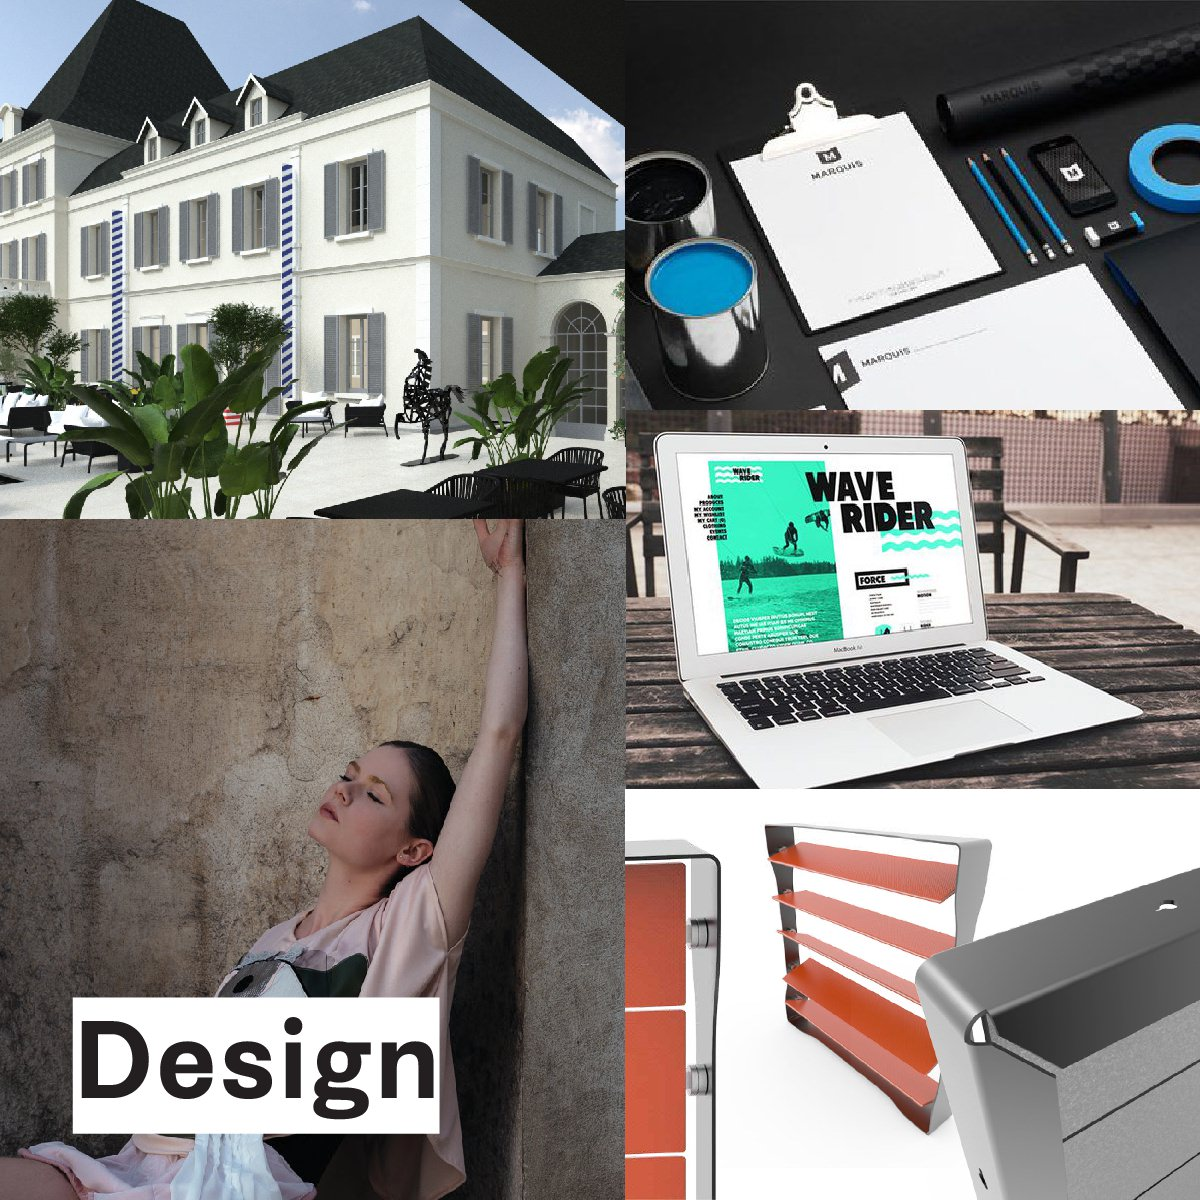 Bellecour Ecole - Design